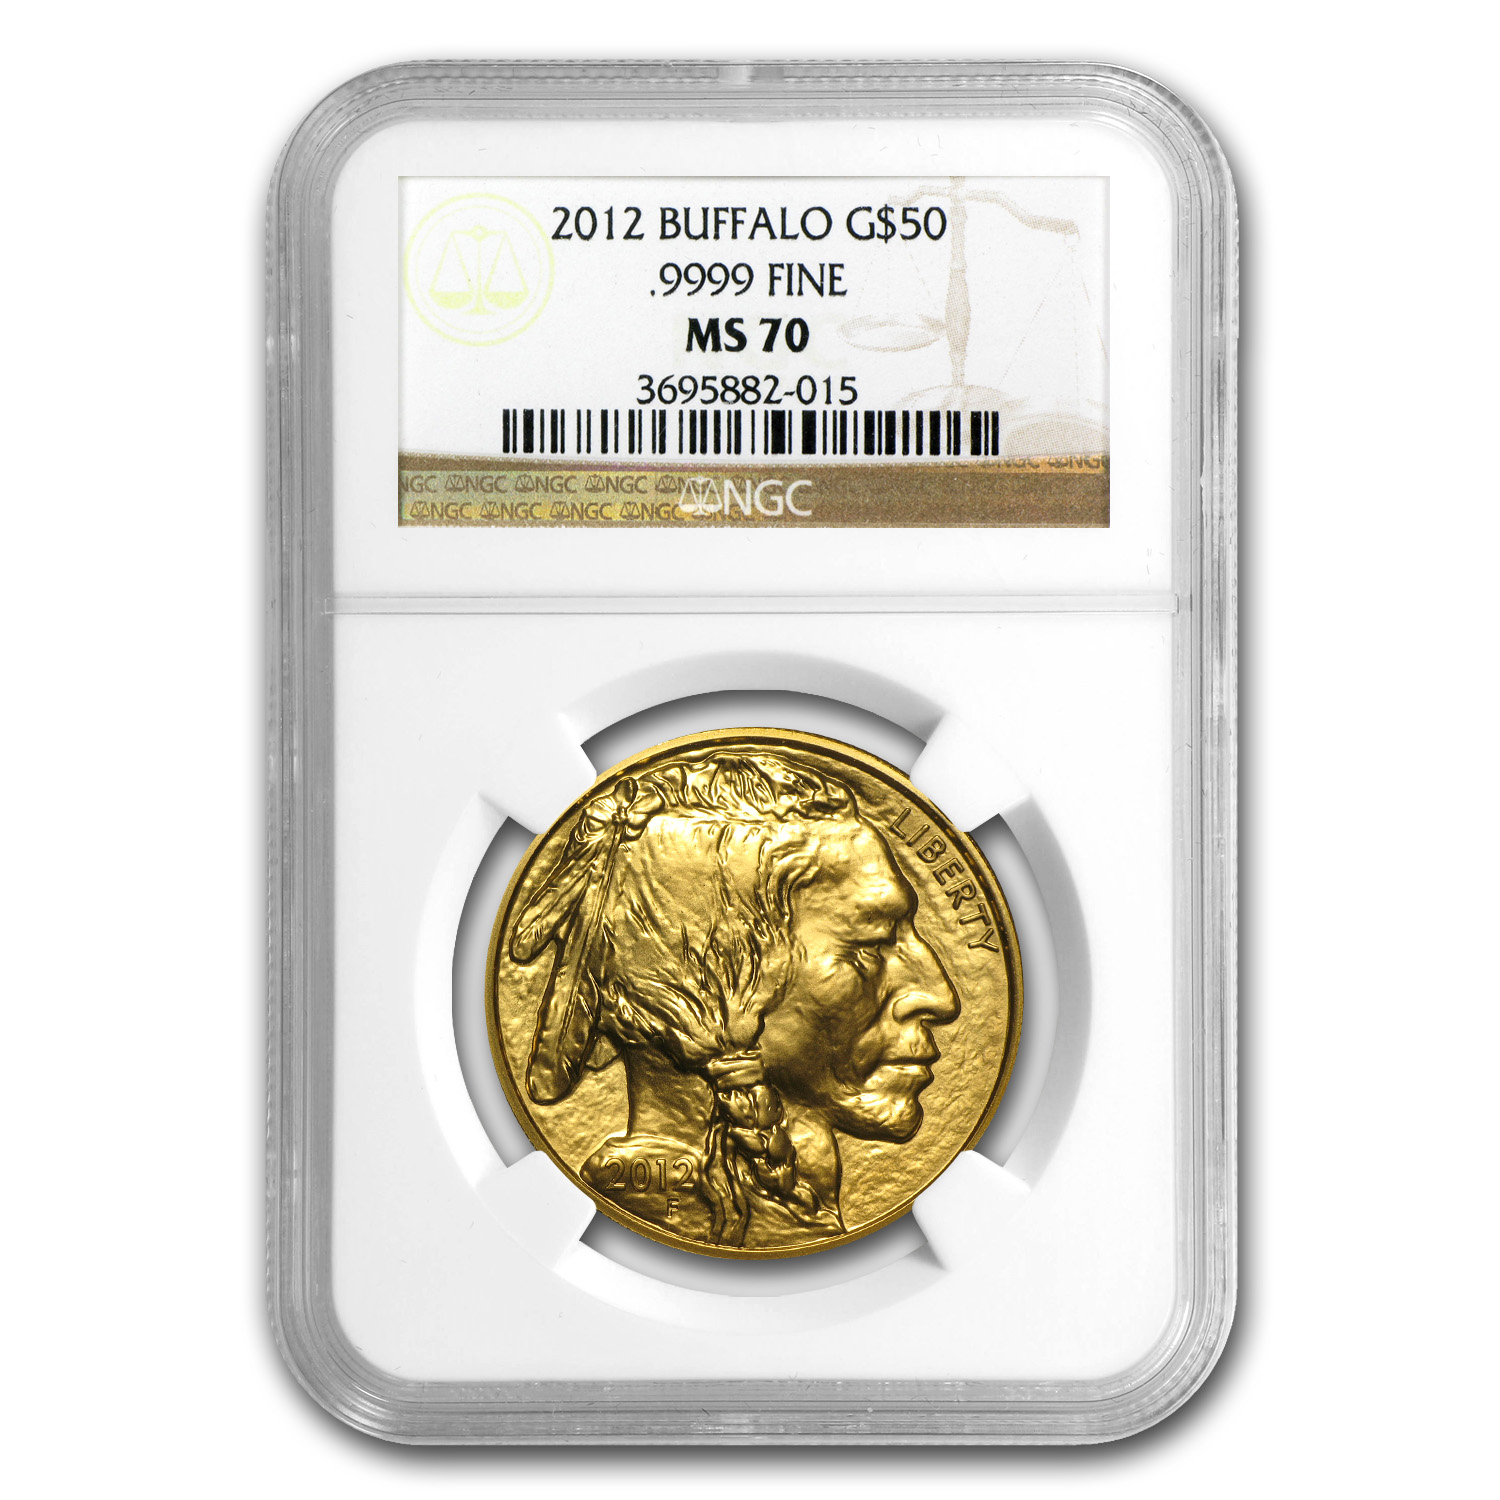 2006-2013 8-Coin 1 oz Gold Buffalo Set MS-70 NGC